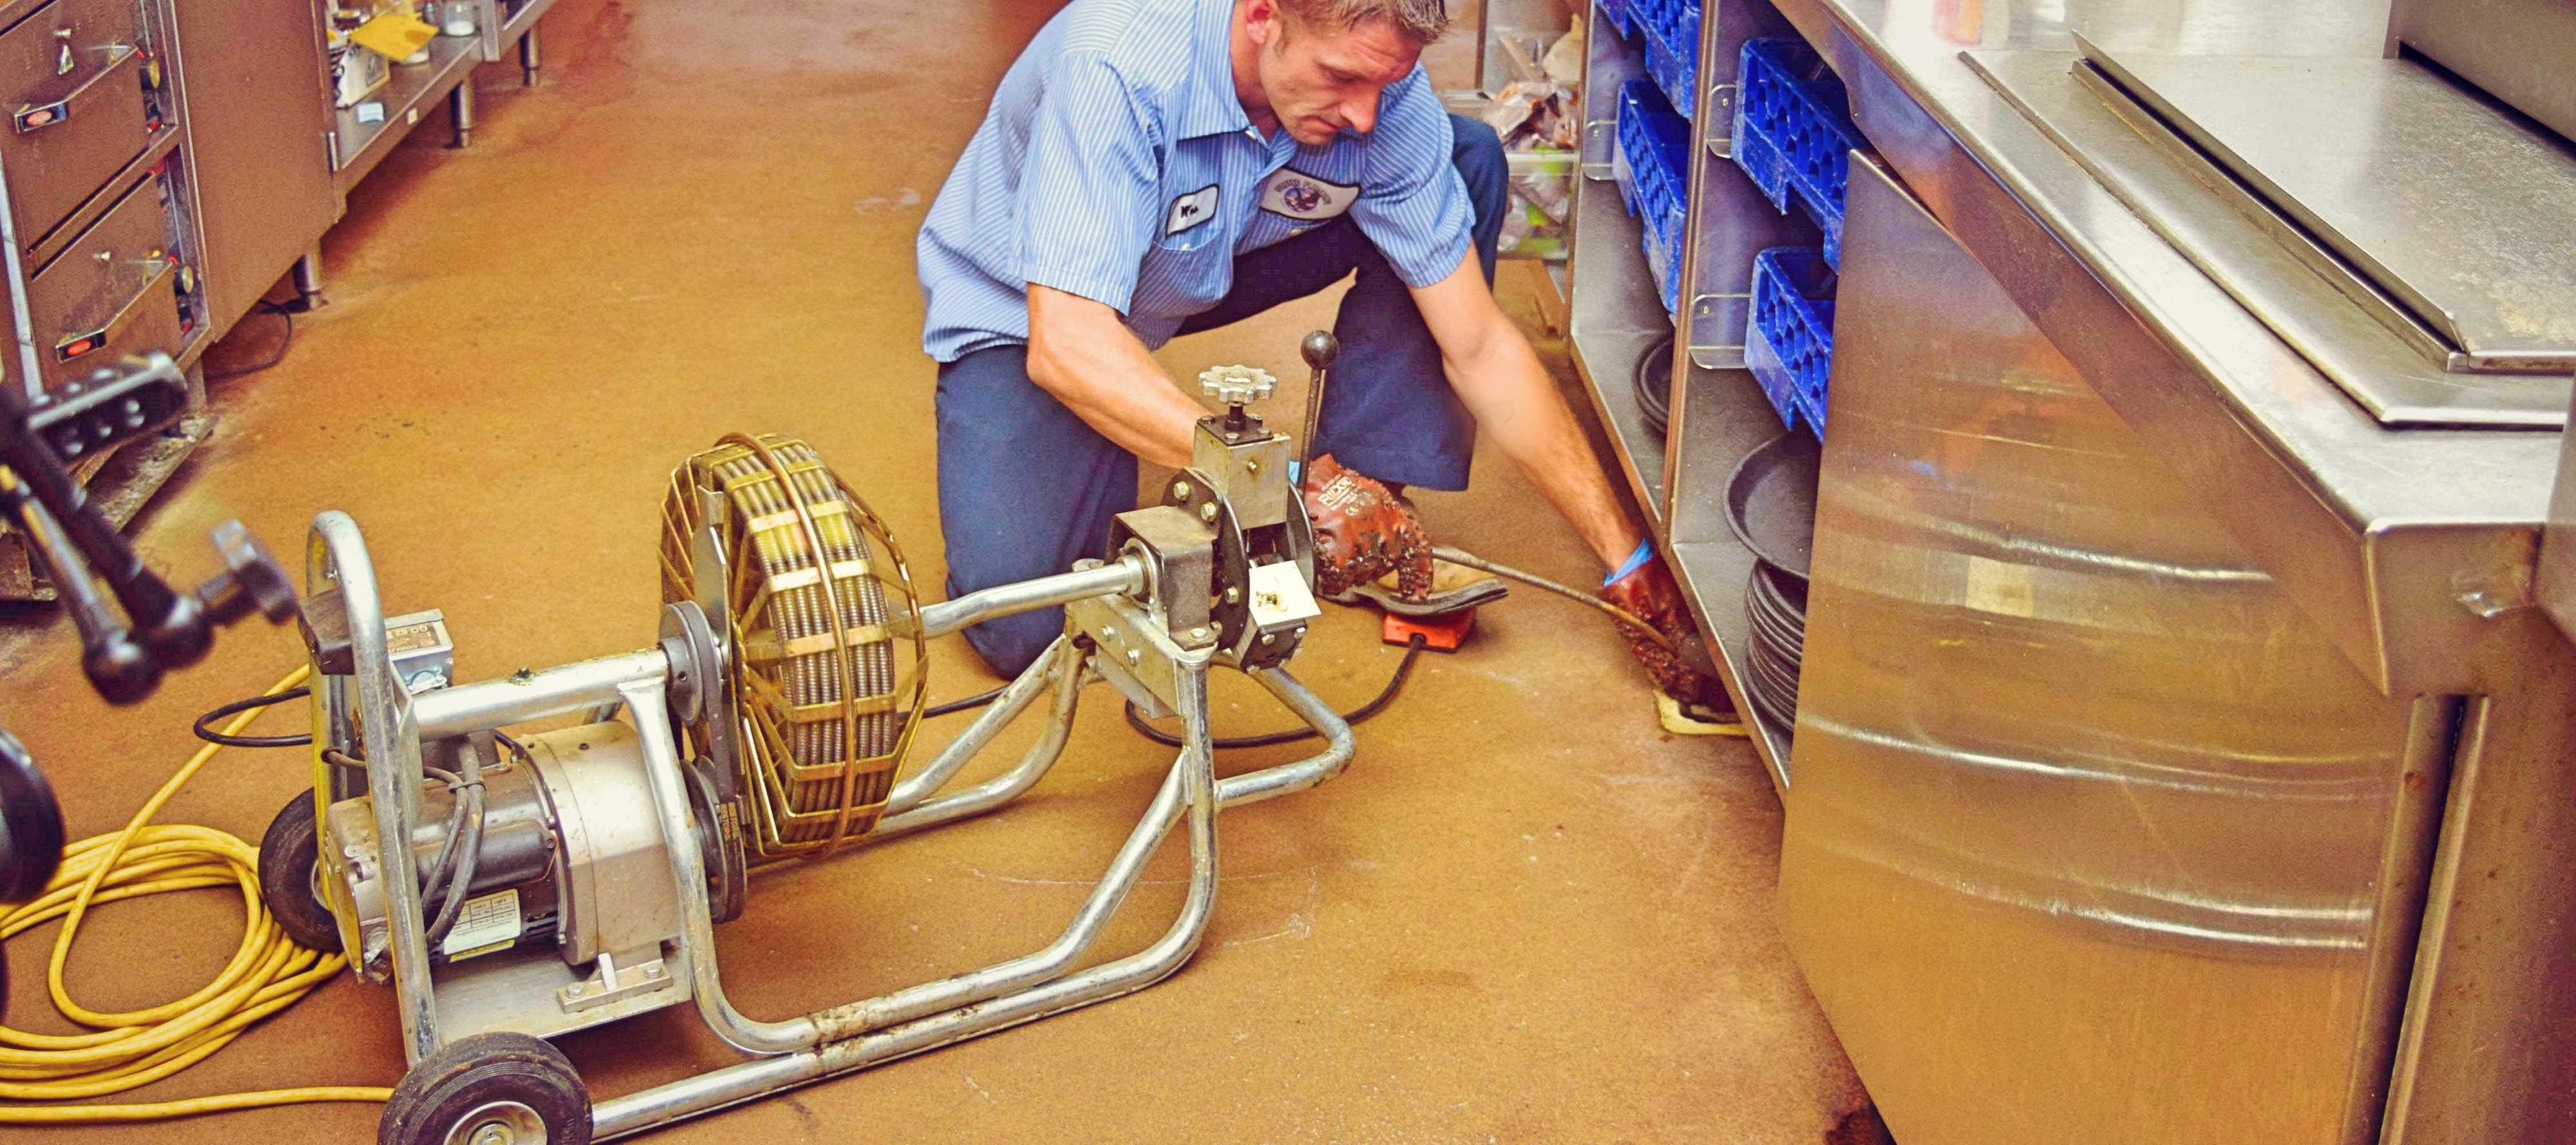 Commercial Kitchens – Reliable Emergency Plumber in Springfield Missouri